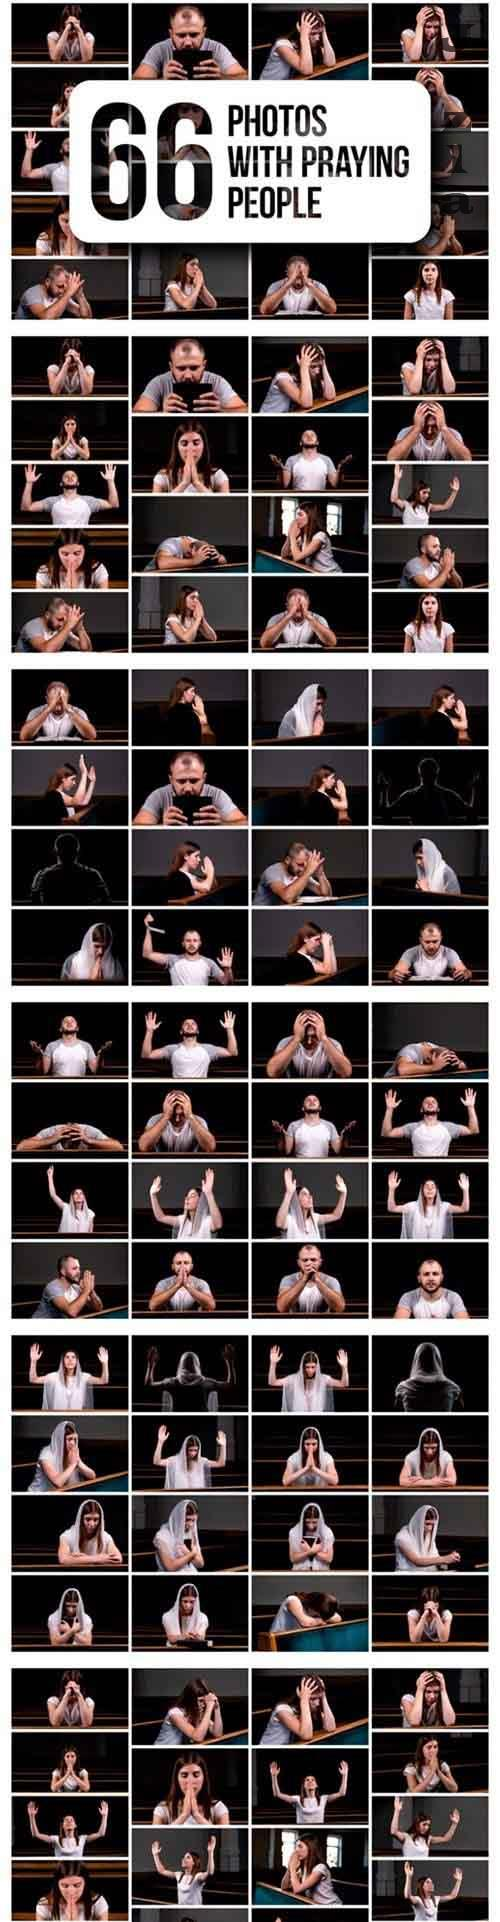 Set of 66 Photos with Praying People